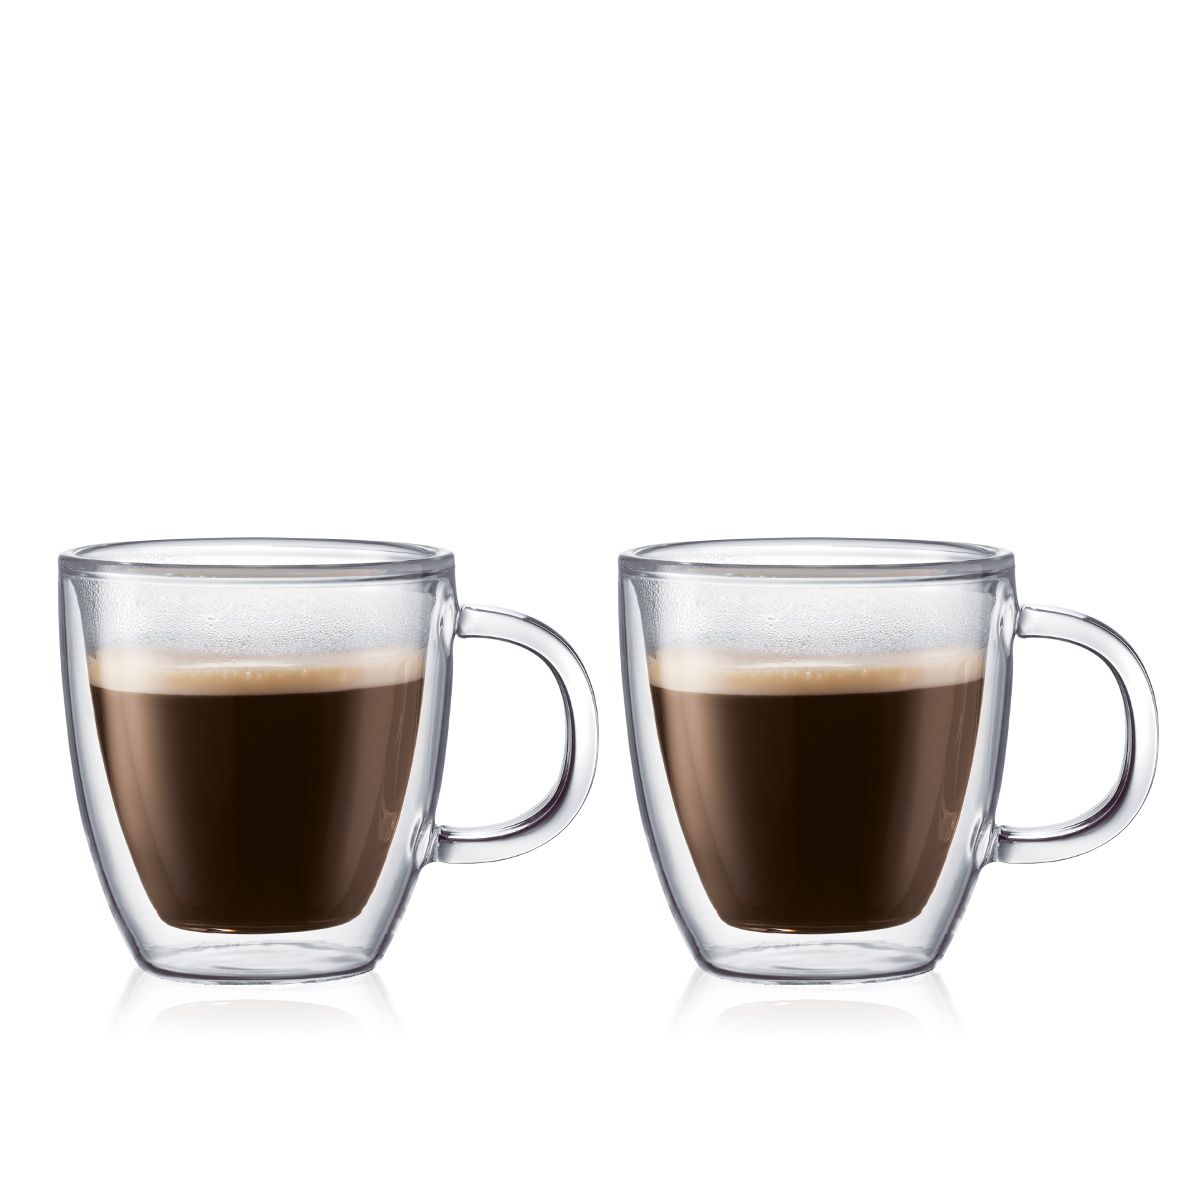 Espresso Cup BISTRO - 2 Pieces Set 0.15 L